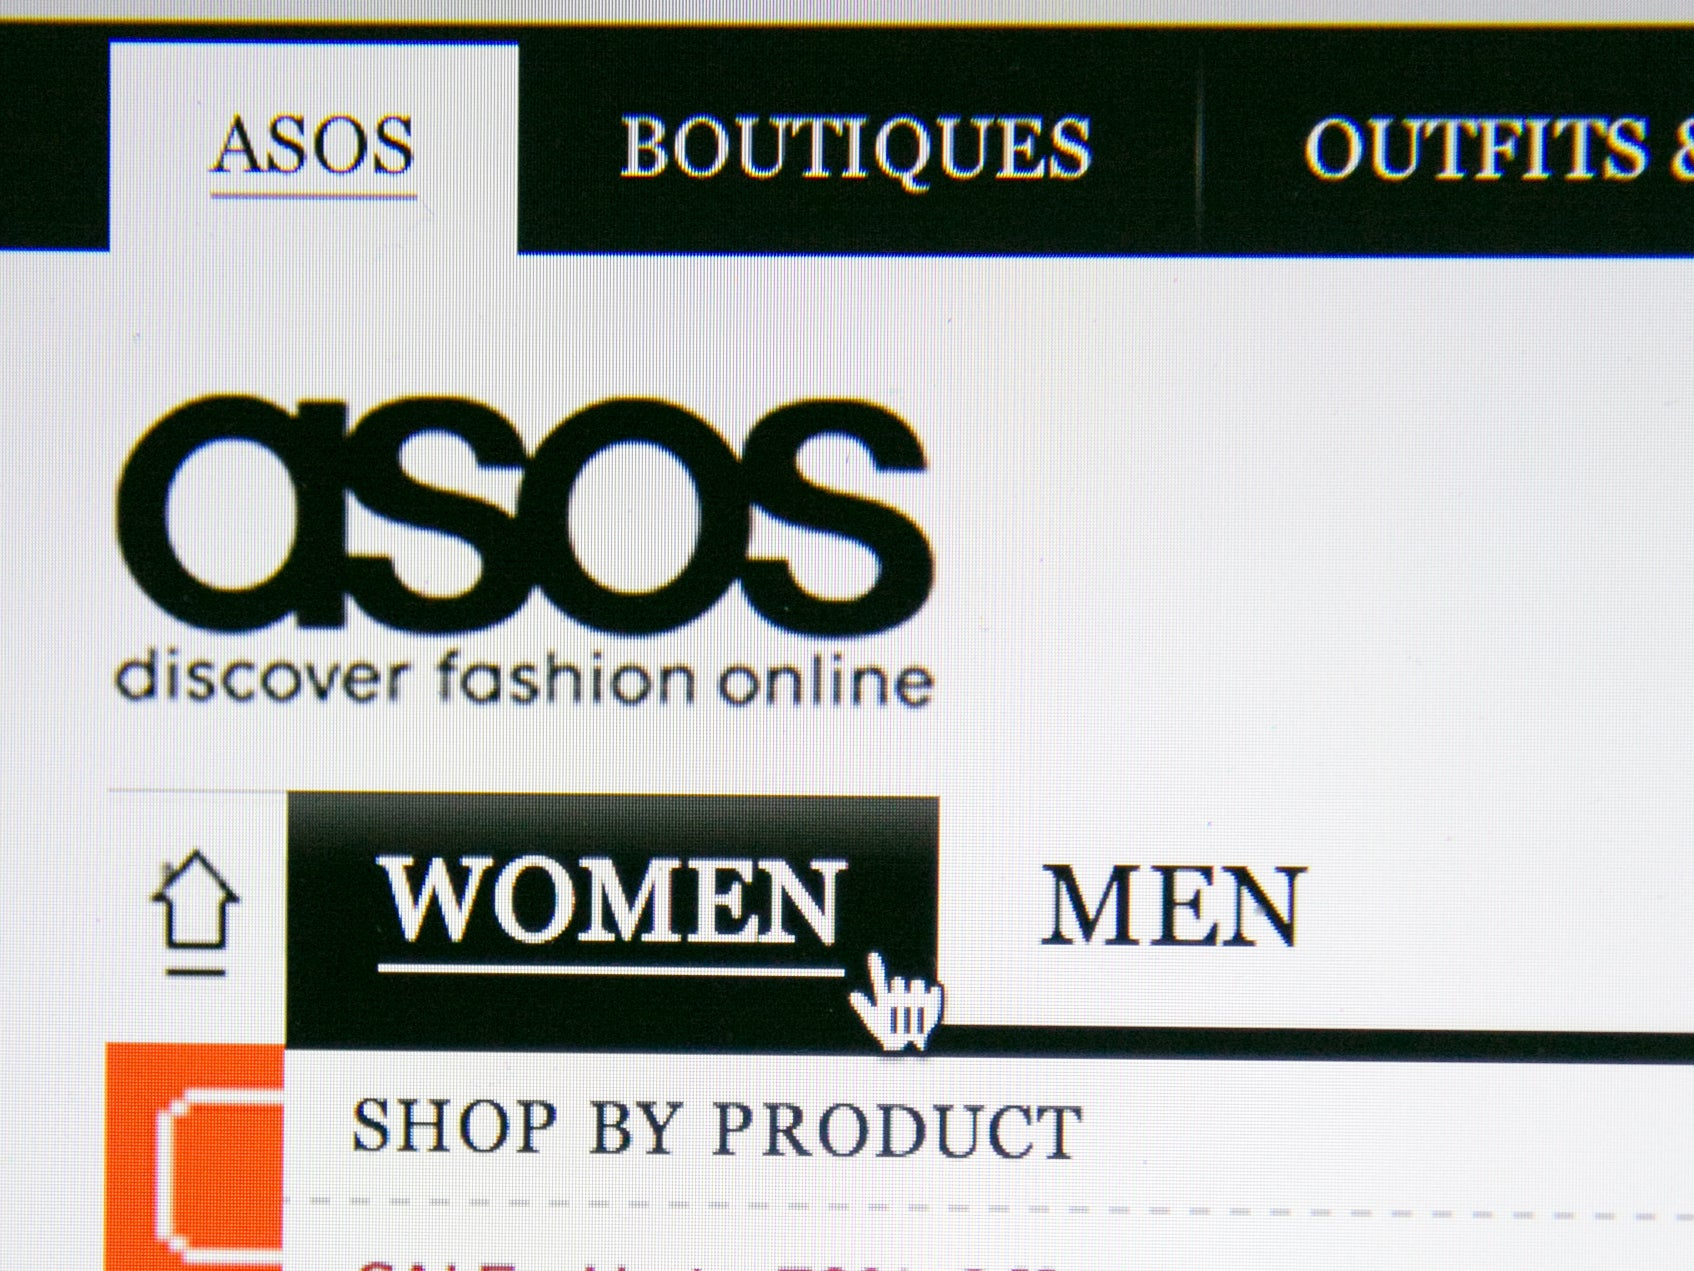 Asos and Next remove Boohoo from sites amid allegations of exploitation at Leicester supplier